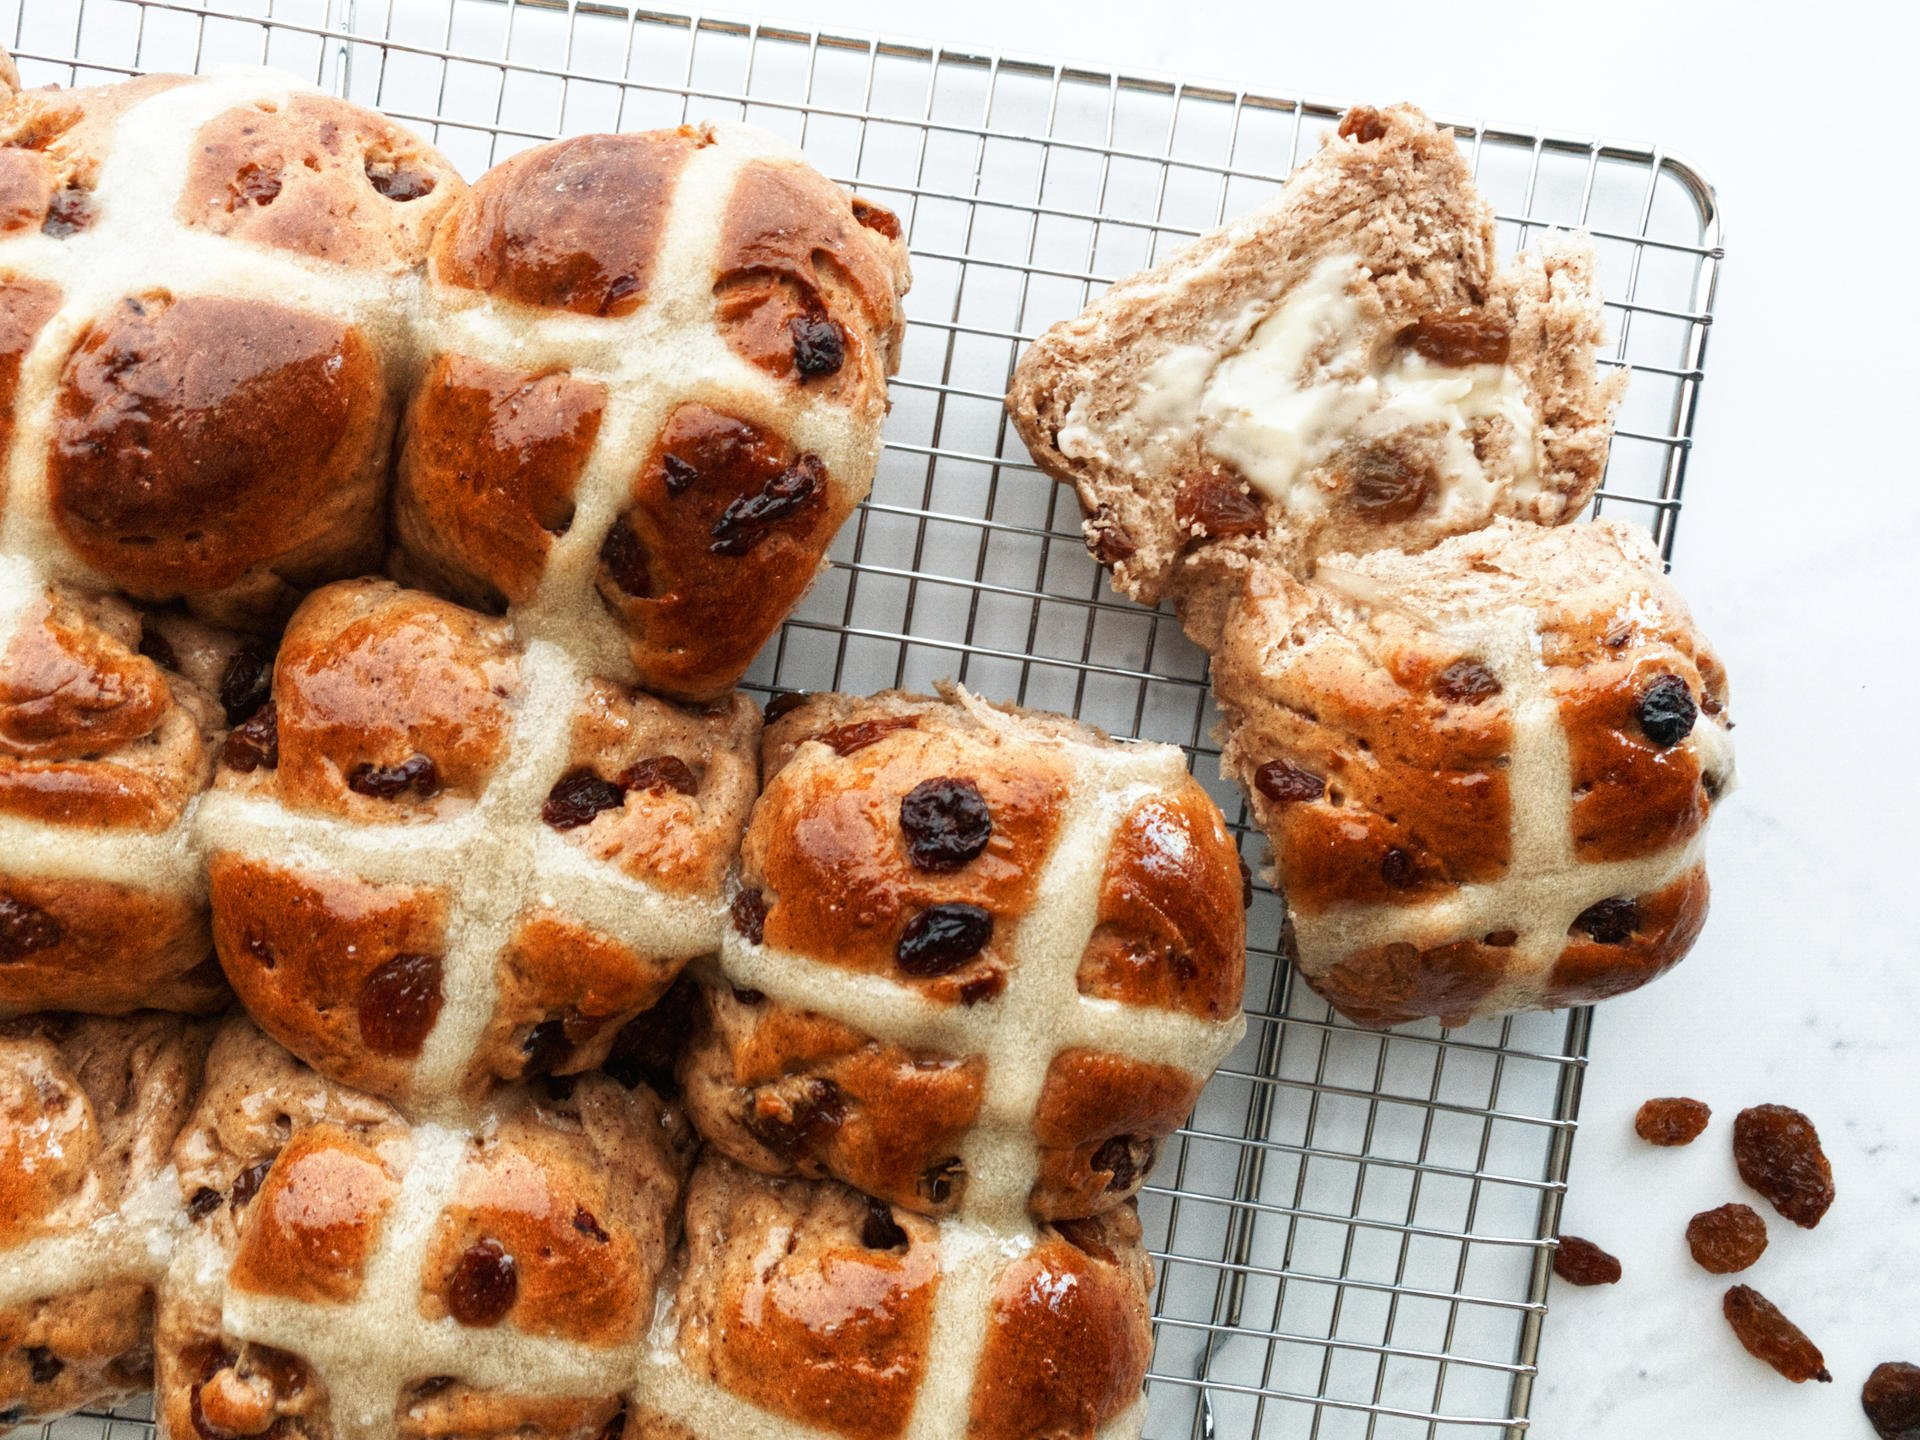 Delicious hot cross buns with lashings of butter